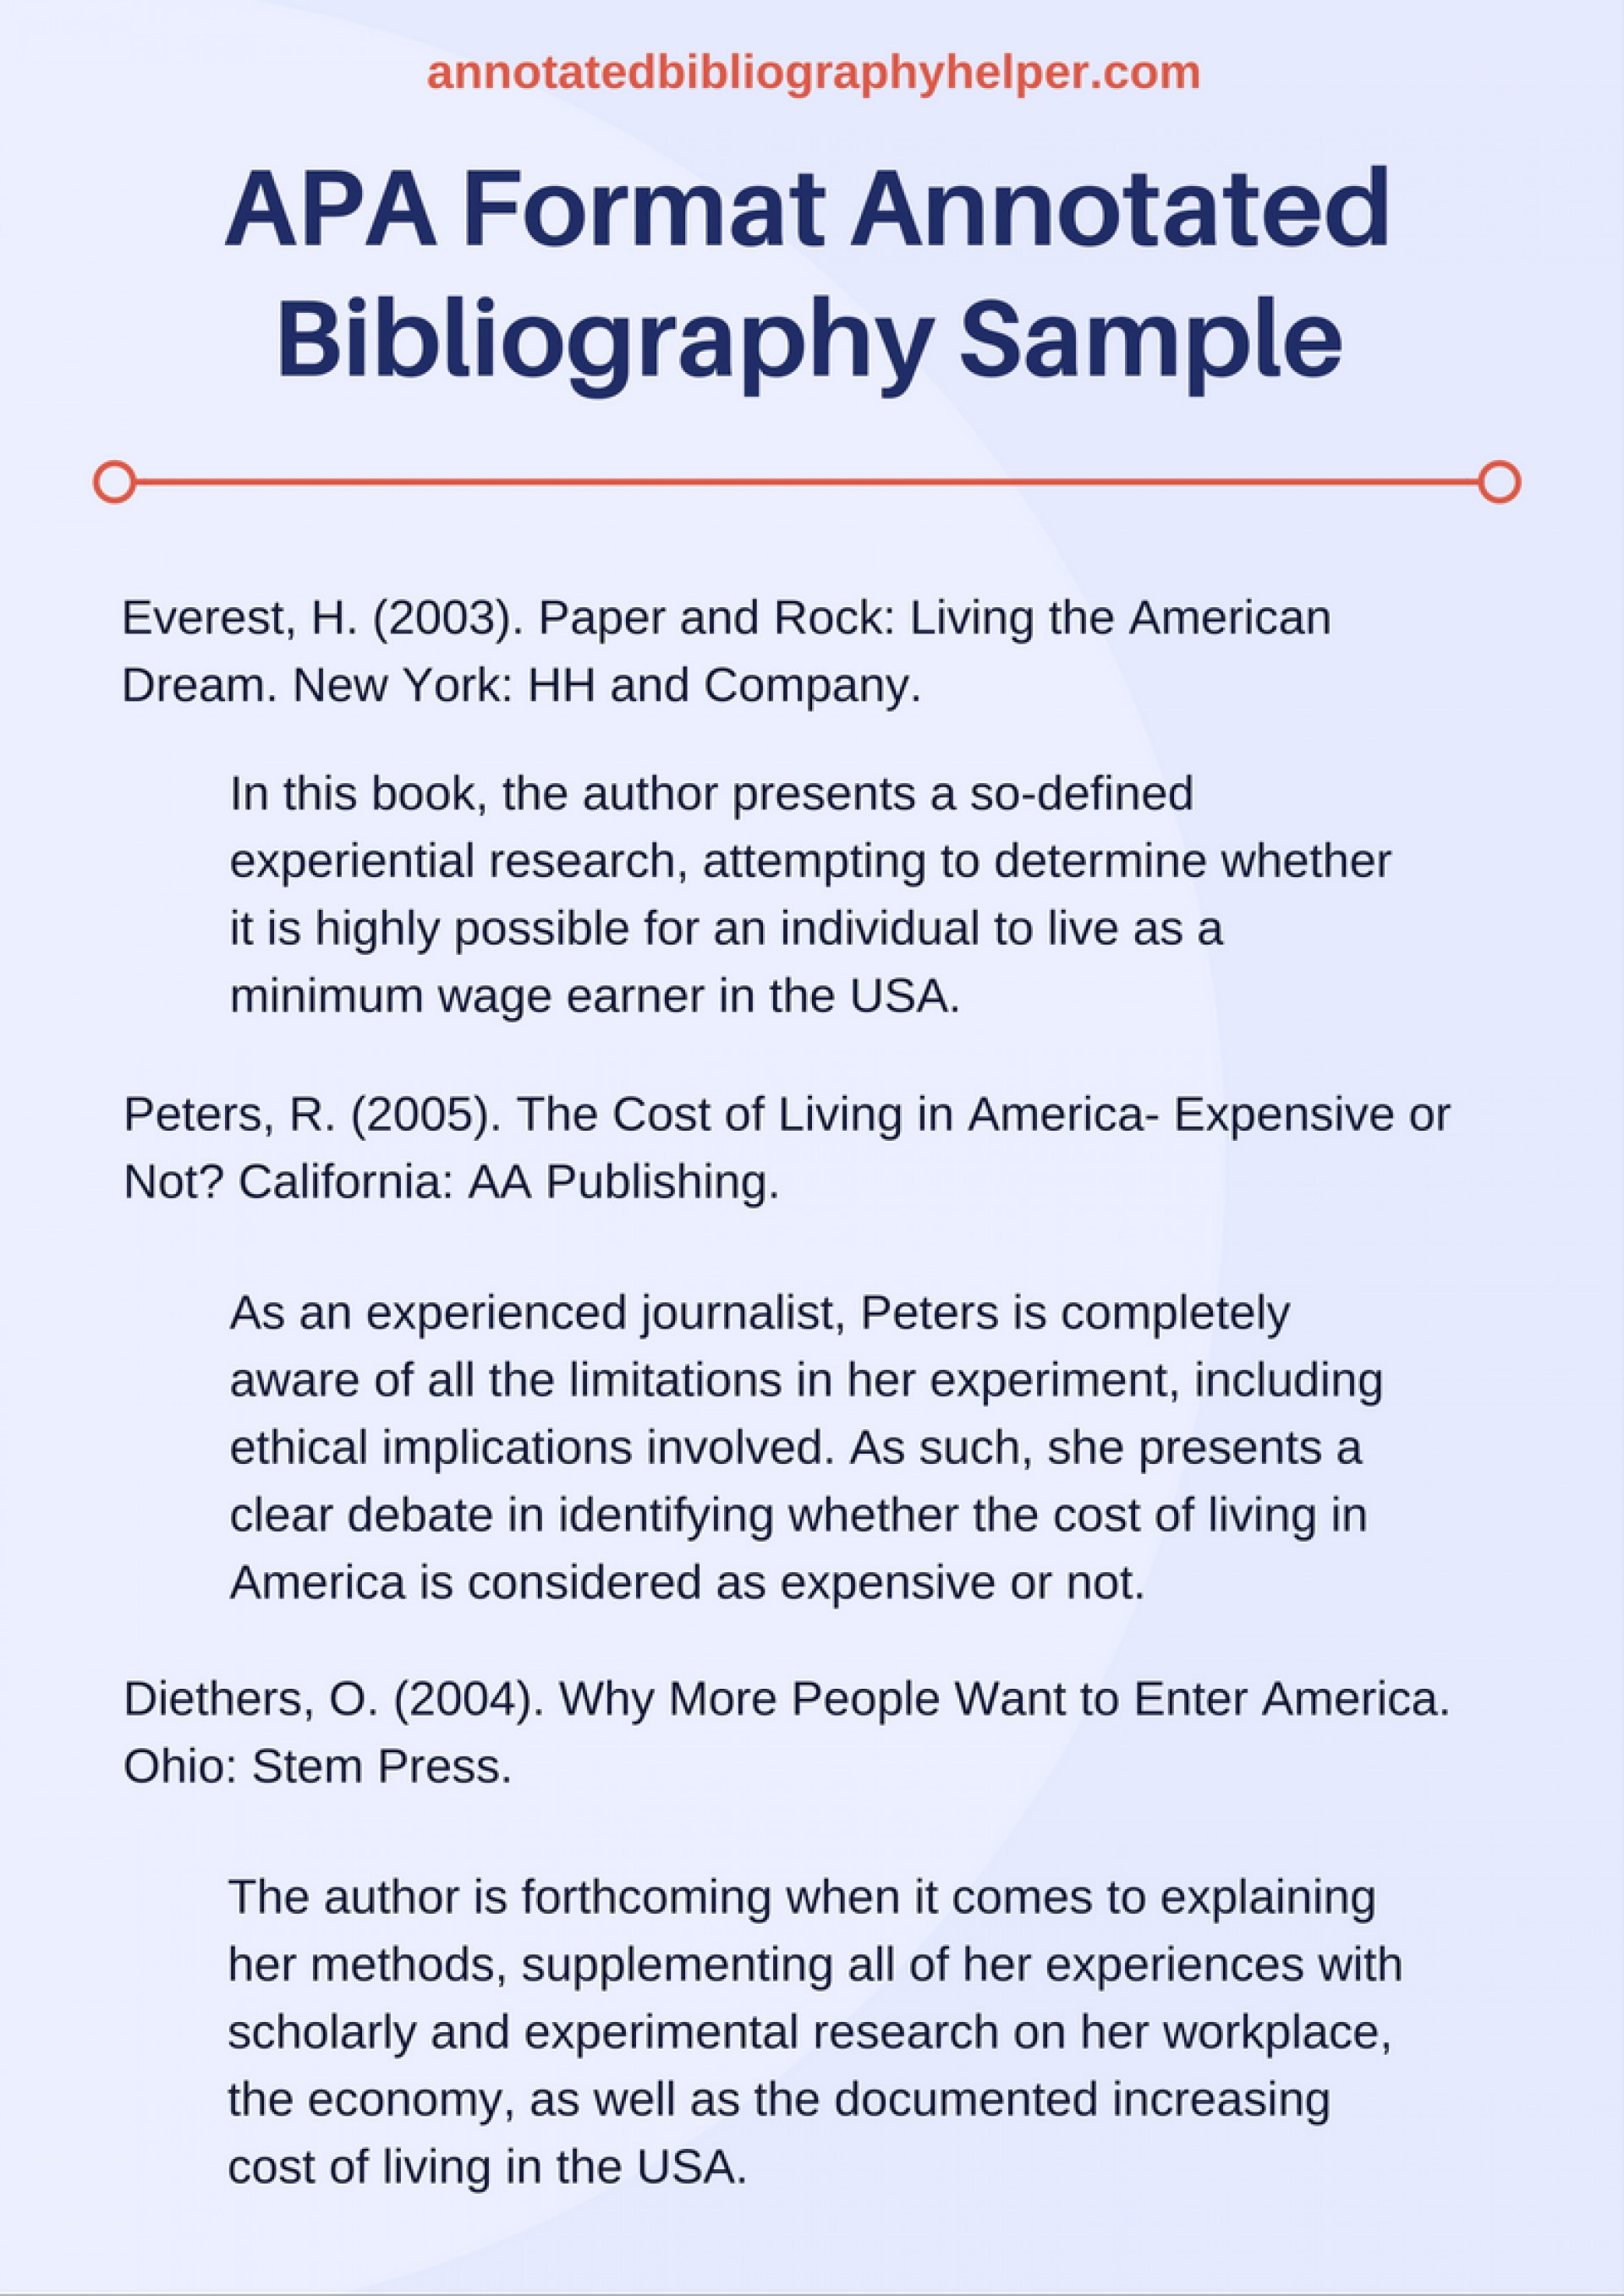 003 Research Paper Apa Format Annotated Bibliography Shocking In Text Citations Citation Style Model 1920